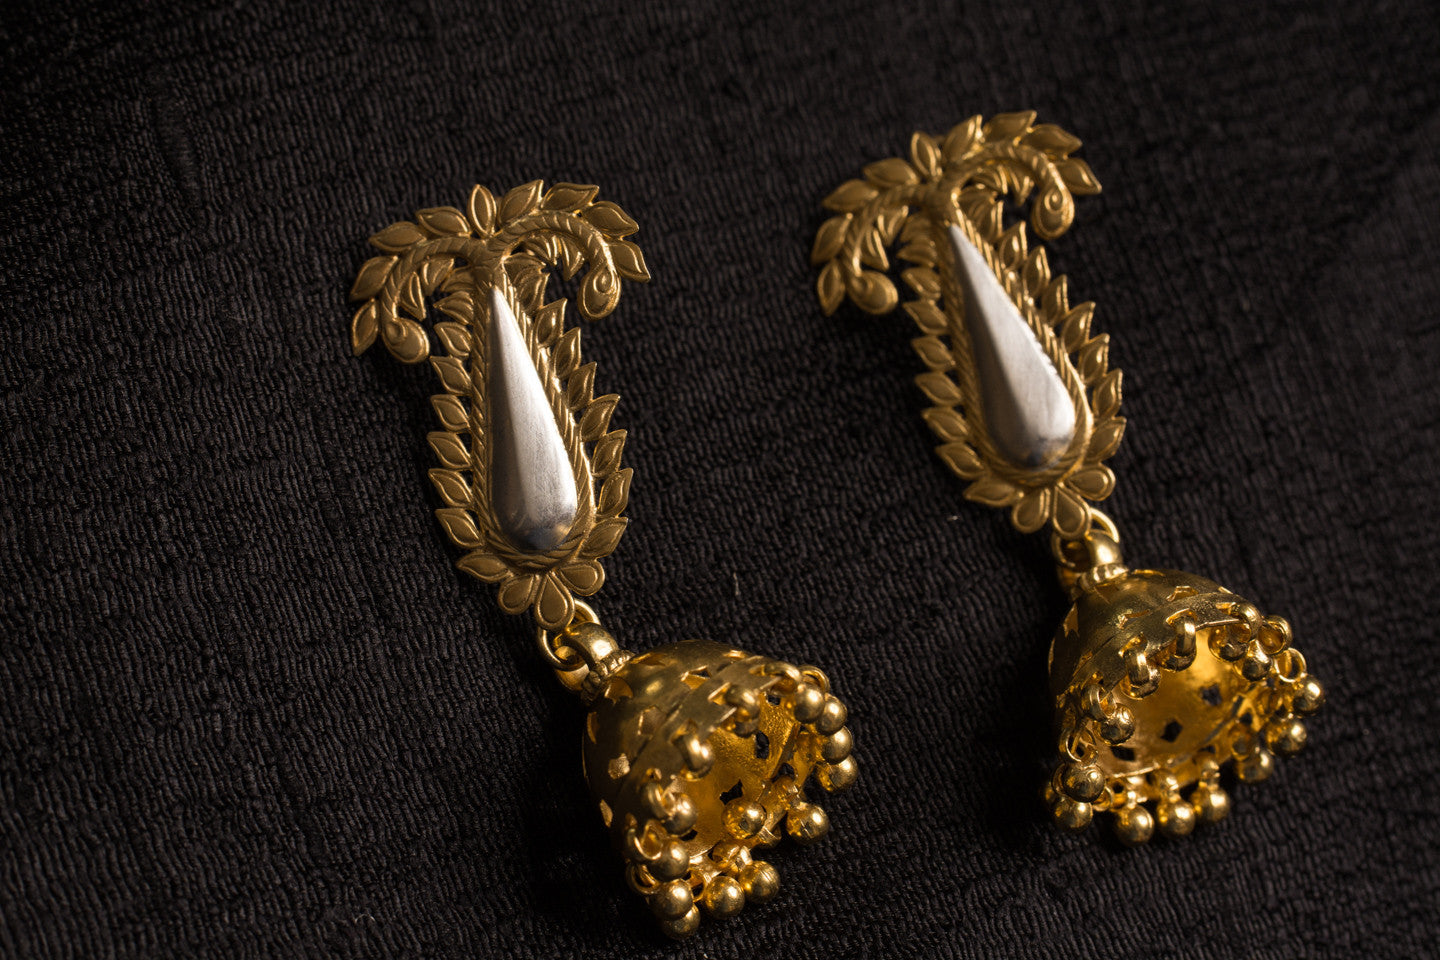 20a451-silver-gold-plated-amrapali-earrings-post-leaf-motif-chandelier